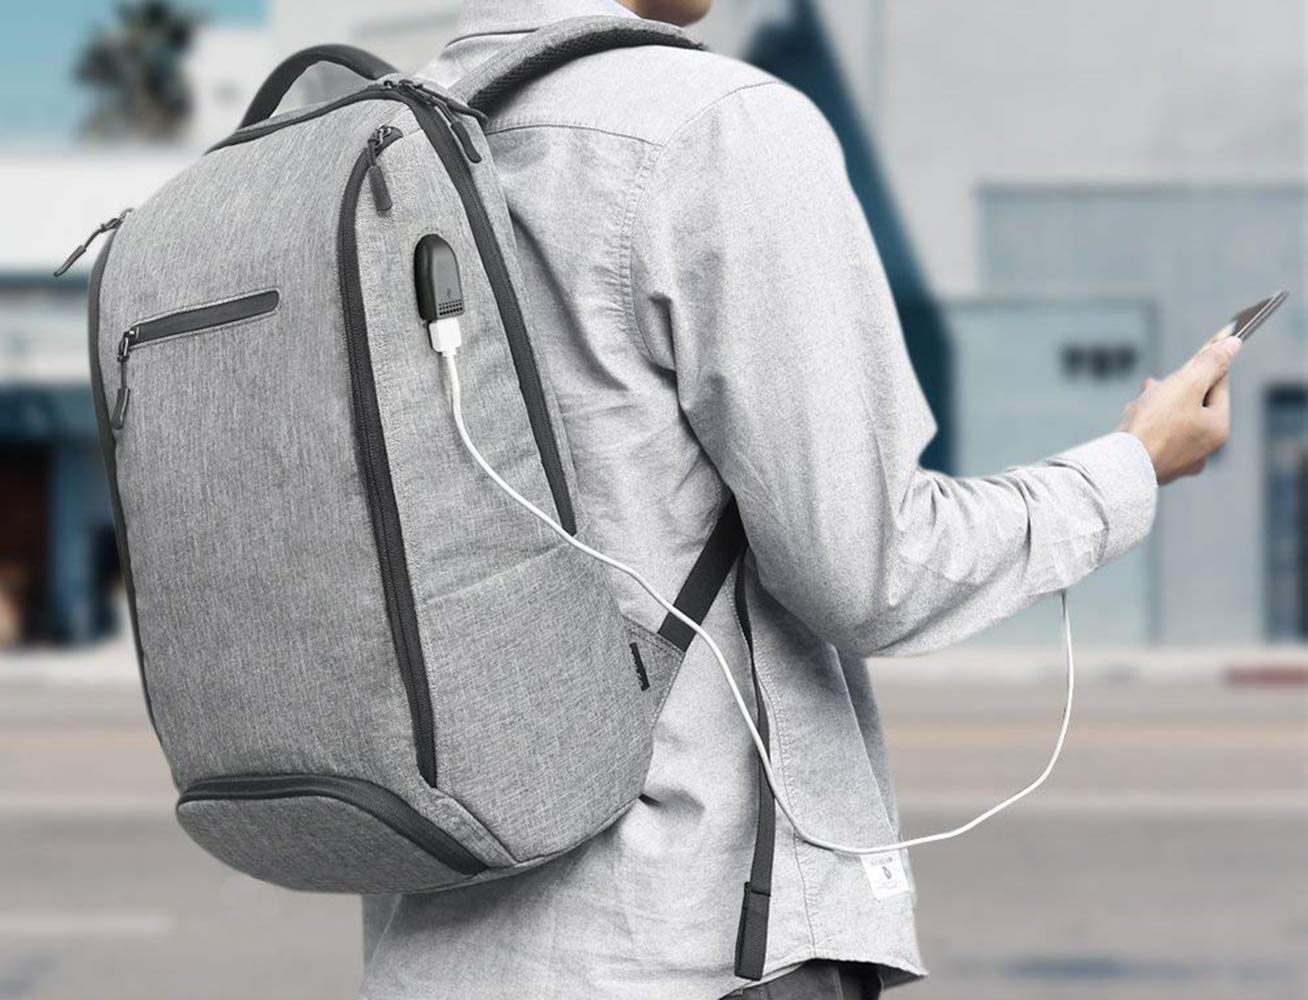 Laptop Backpack, REYLEO Backpack, Work Backpack for Man&Woman,Fits 15.6 Inch Laptop, with Shoe Compartment, External USB Charging Port, Water Resistant,Gray, Back to School Choice, RB06 by REYLEO (Image #8)